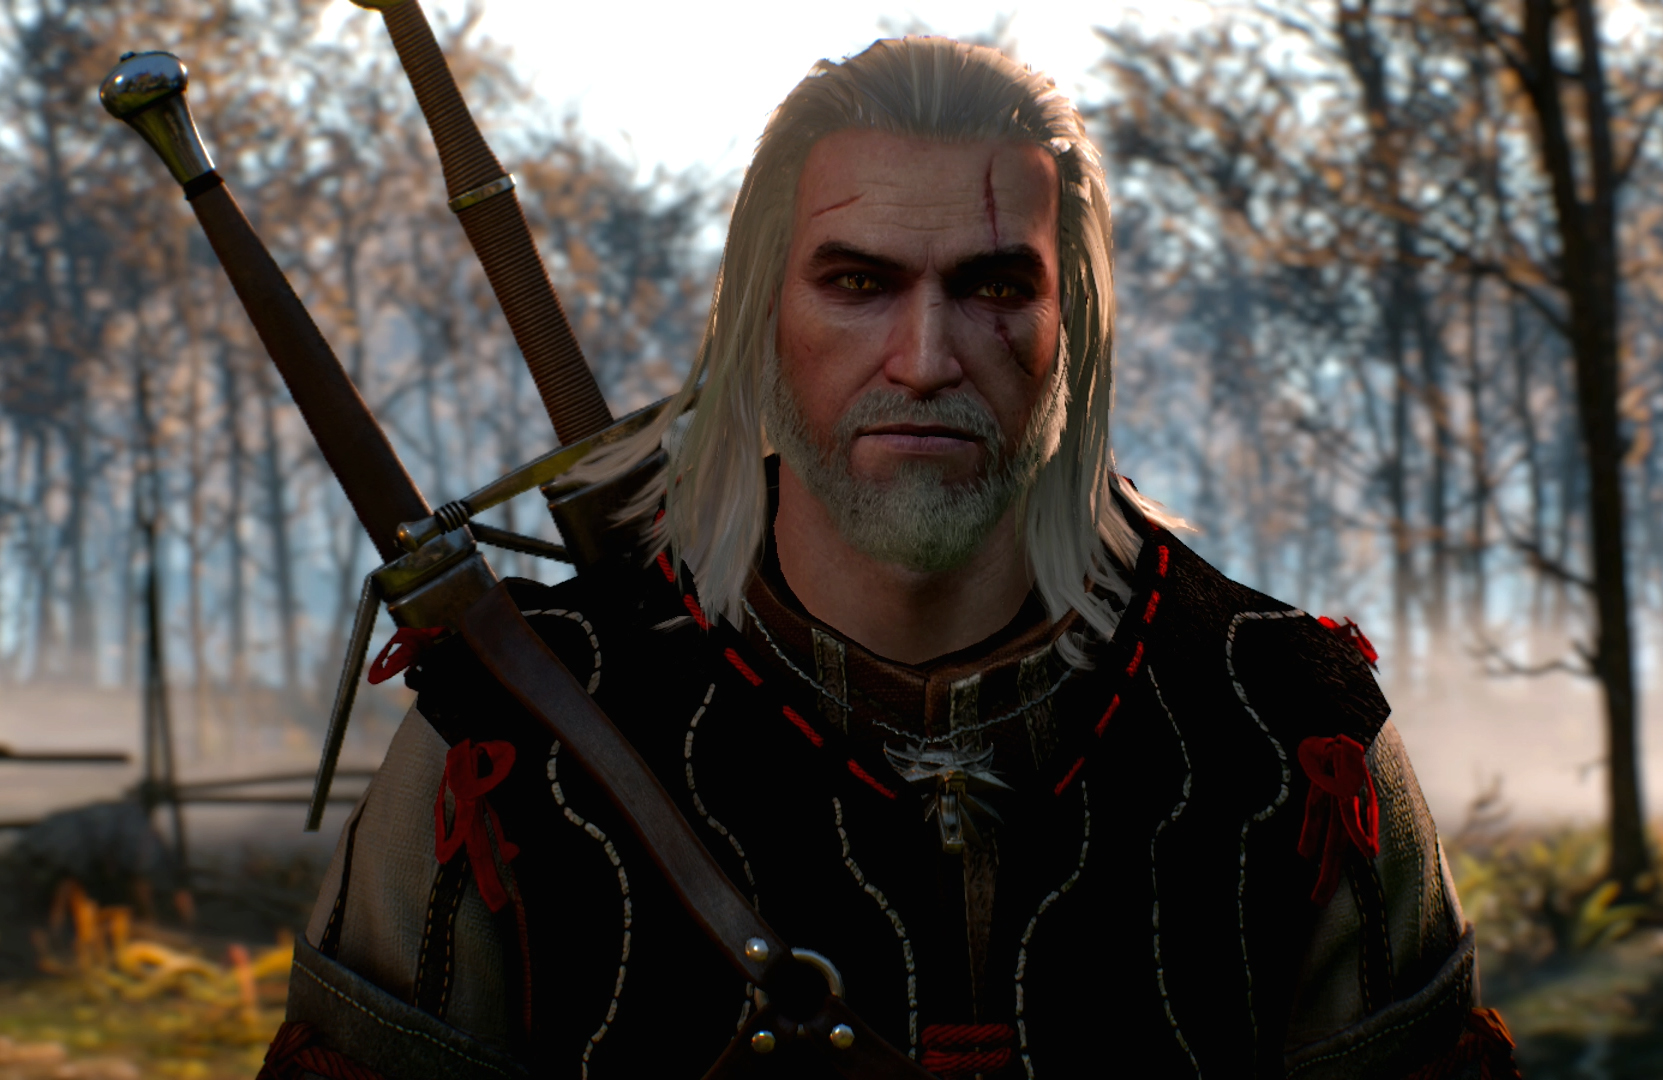 Witcher 3 Hair Styles: The Witcher 3 Wild Hunt Guide: How To Get Hairstyles